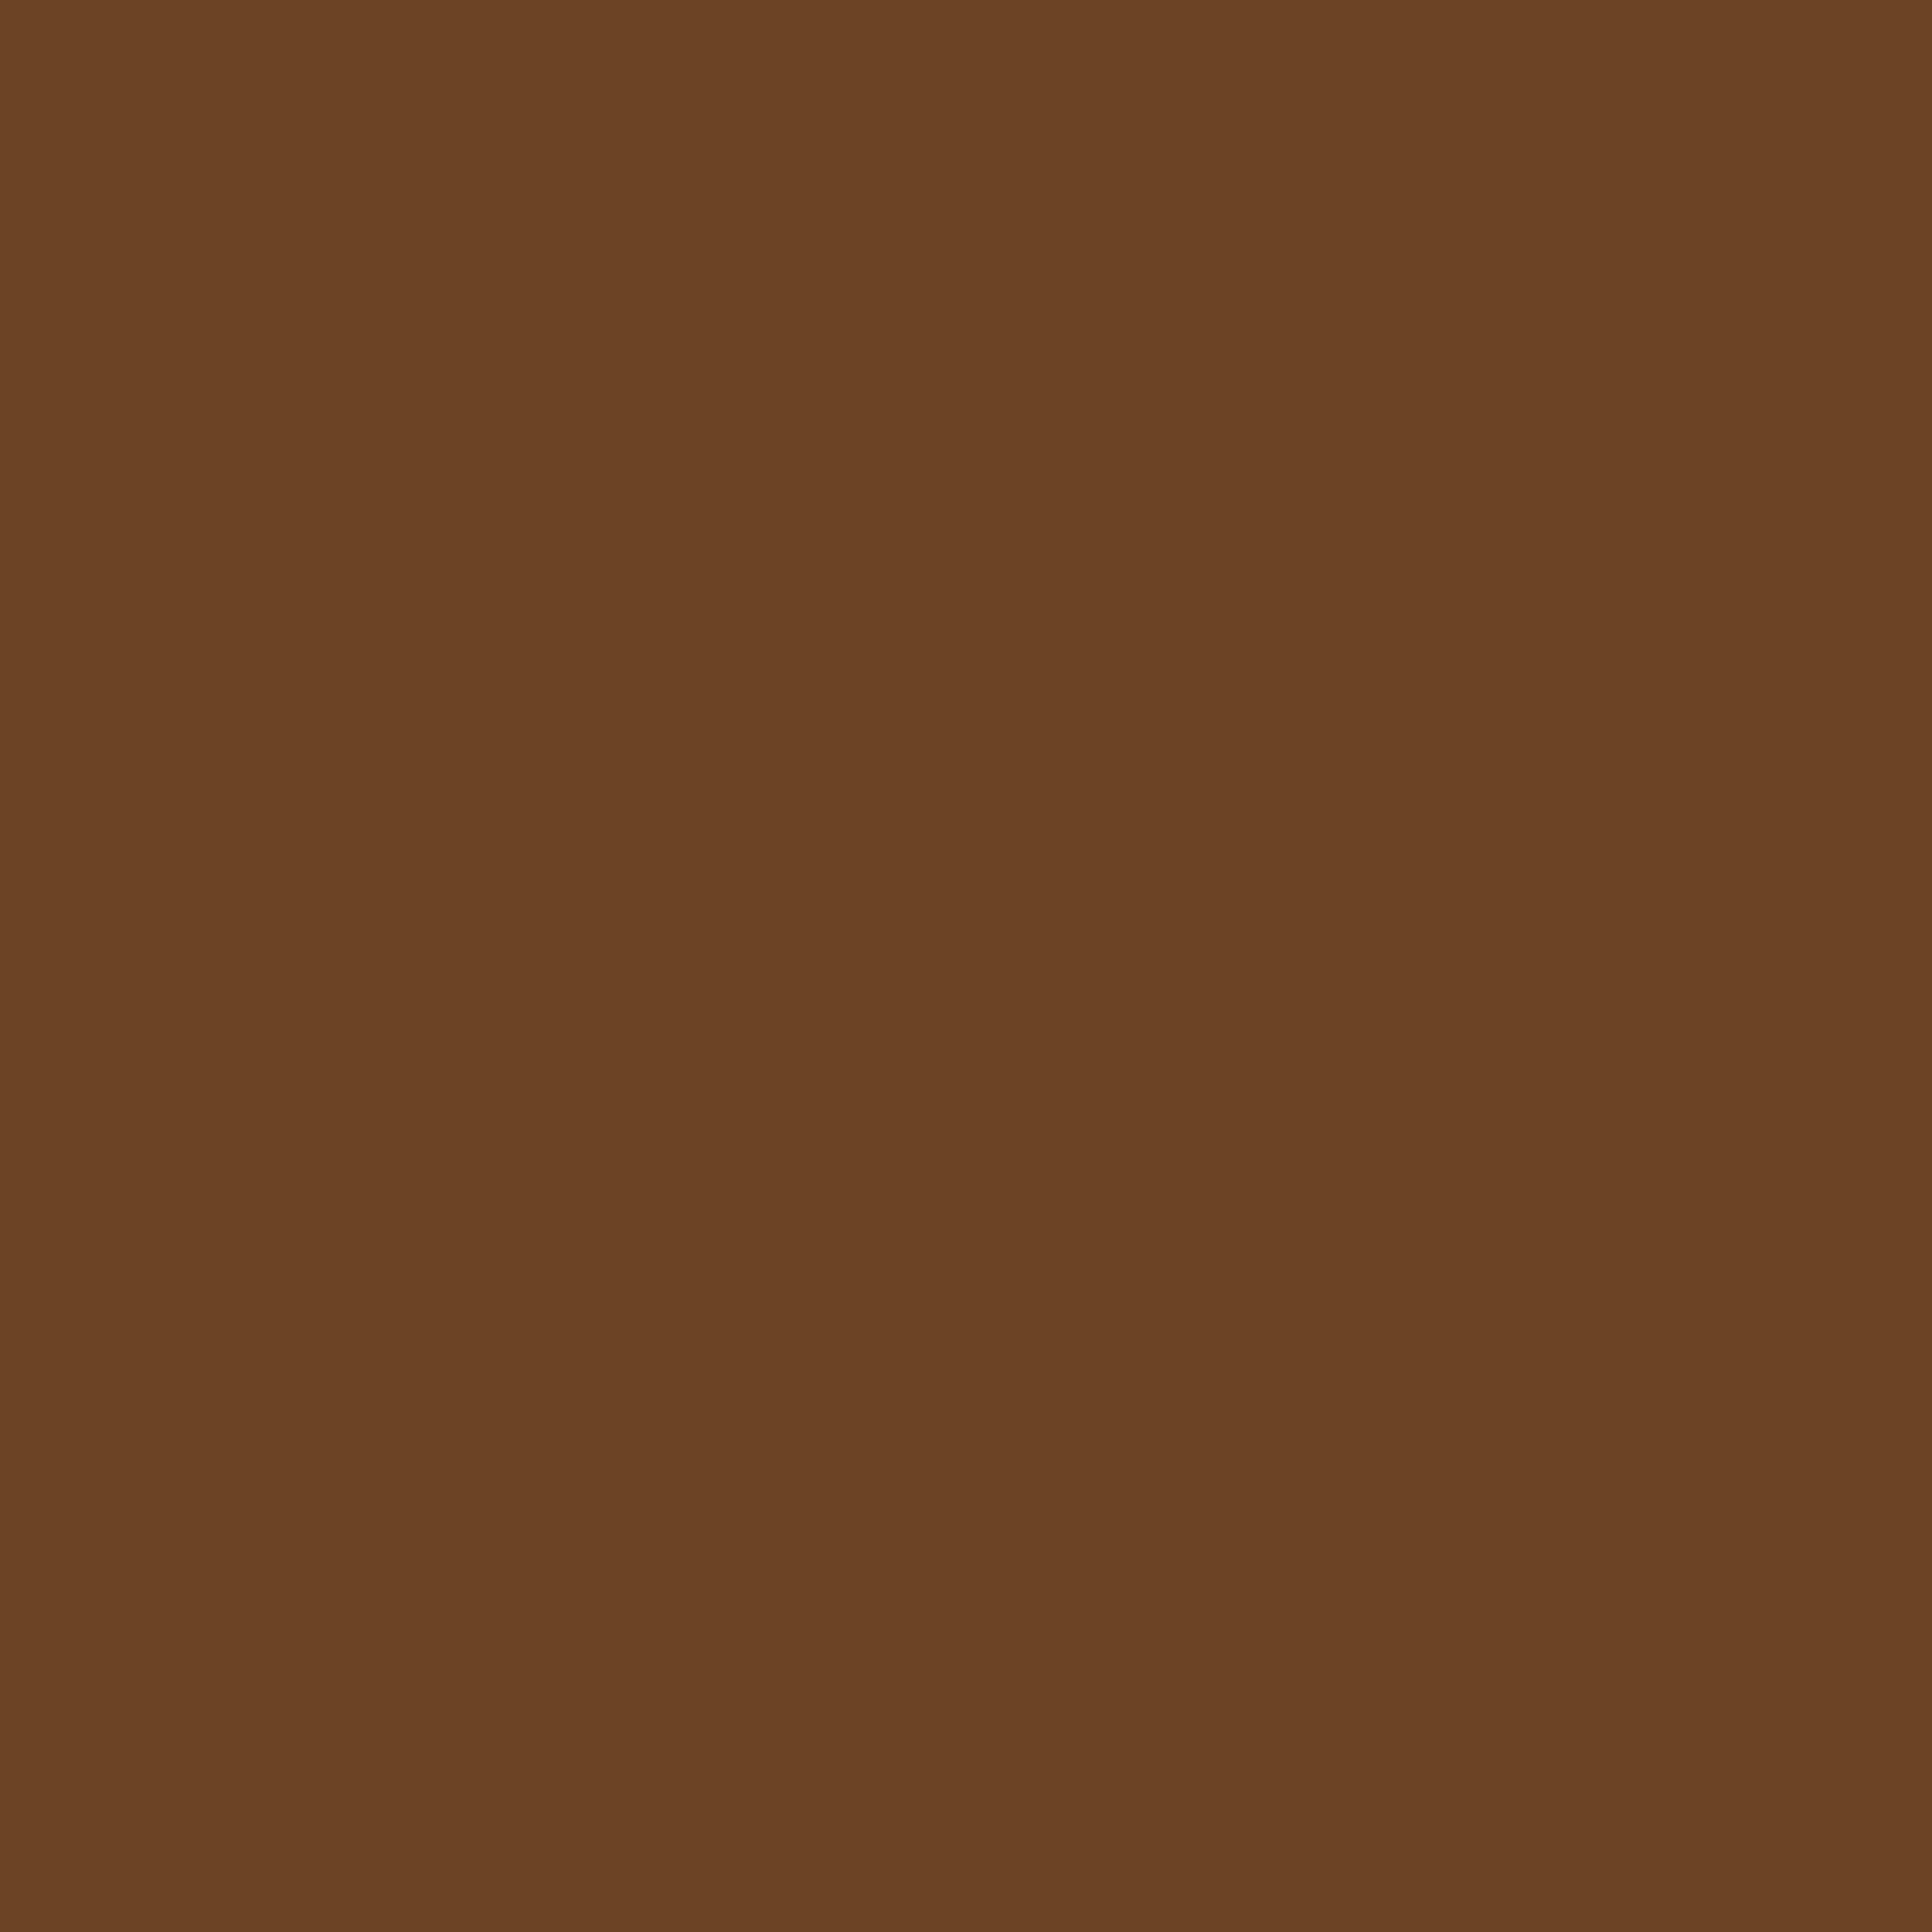 2048x2048 Brown-nose Solid Color Background